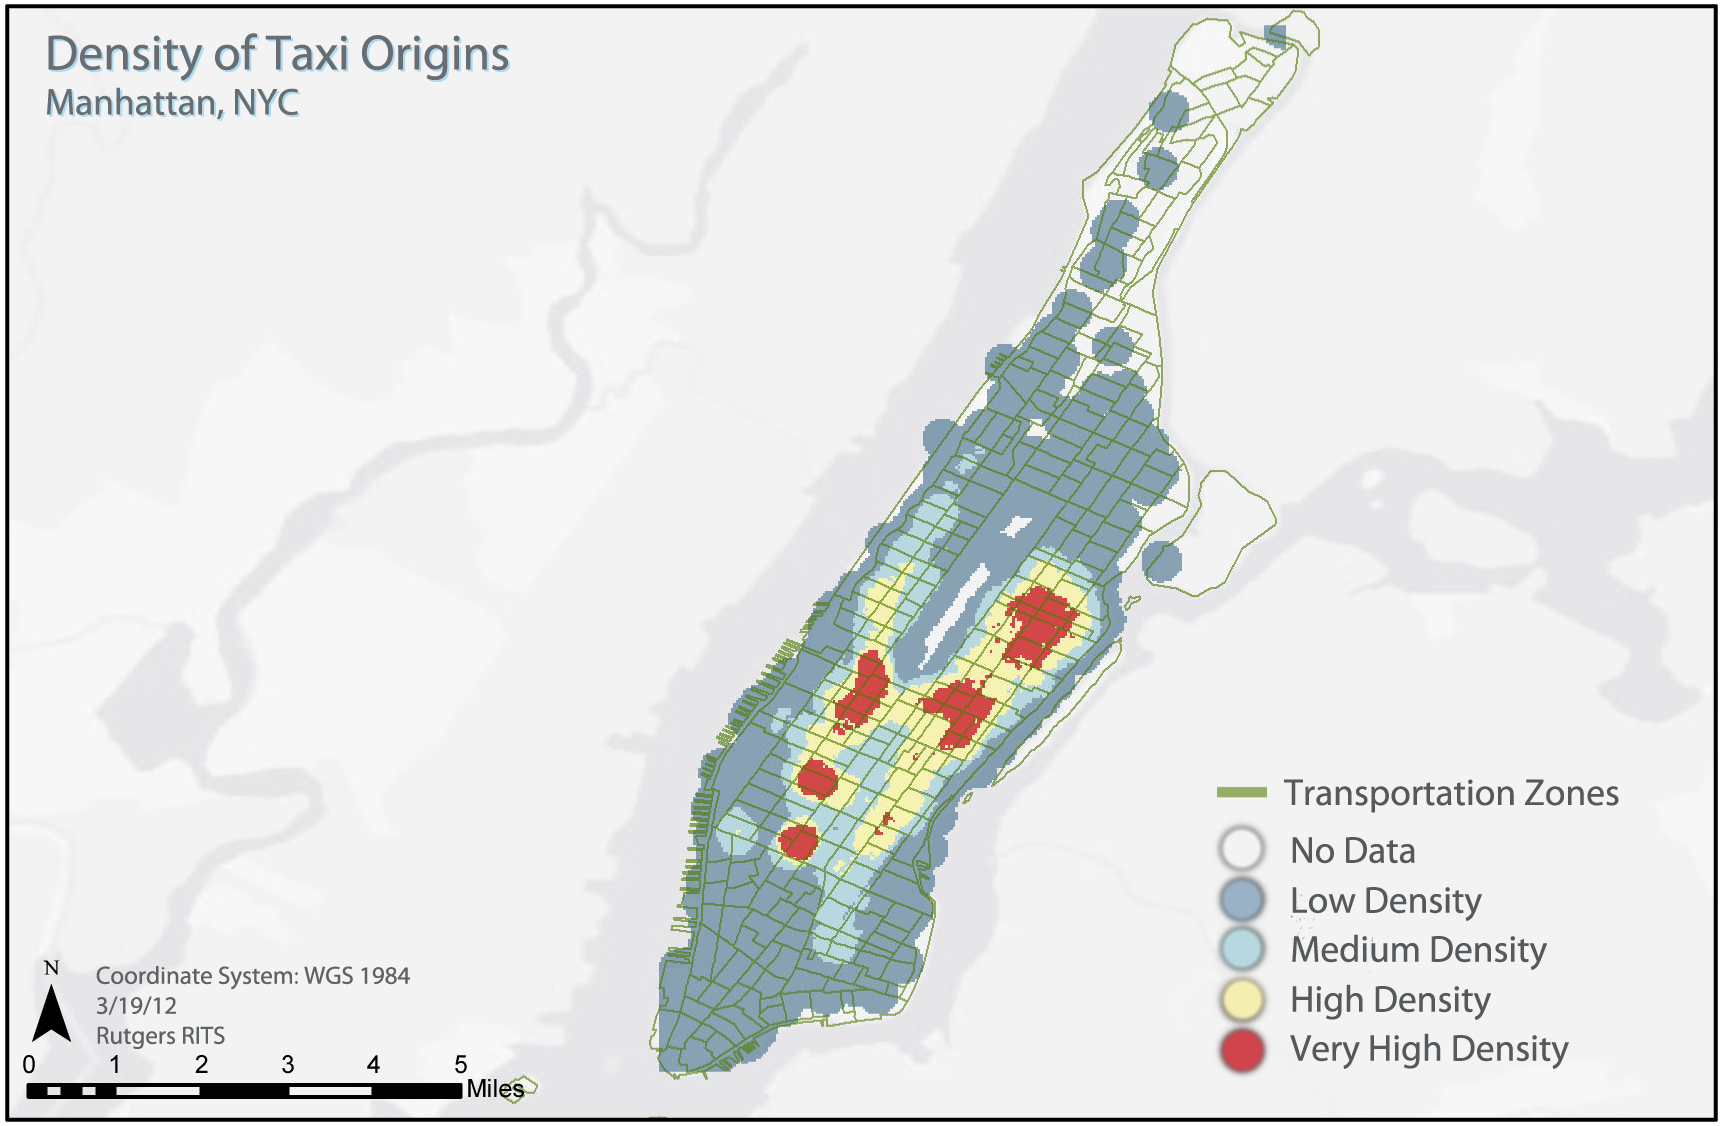 Taxi density within NYC